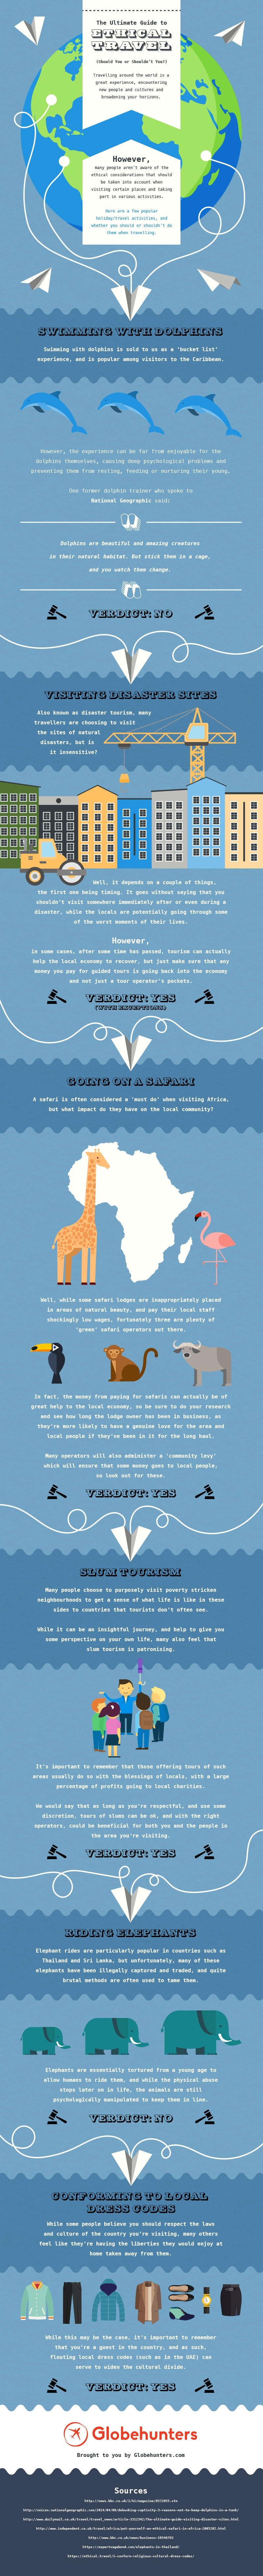 The Ultimate Guide to Ethical Travel [Infographic]